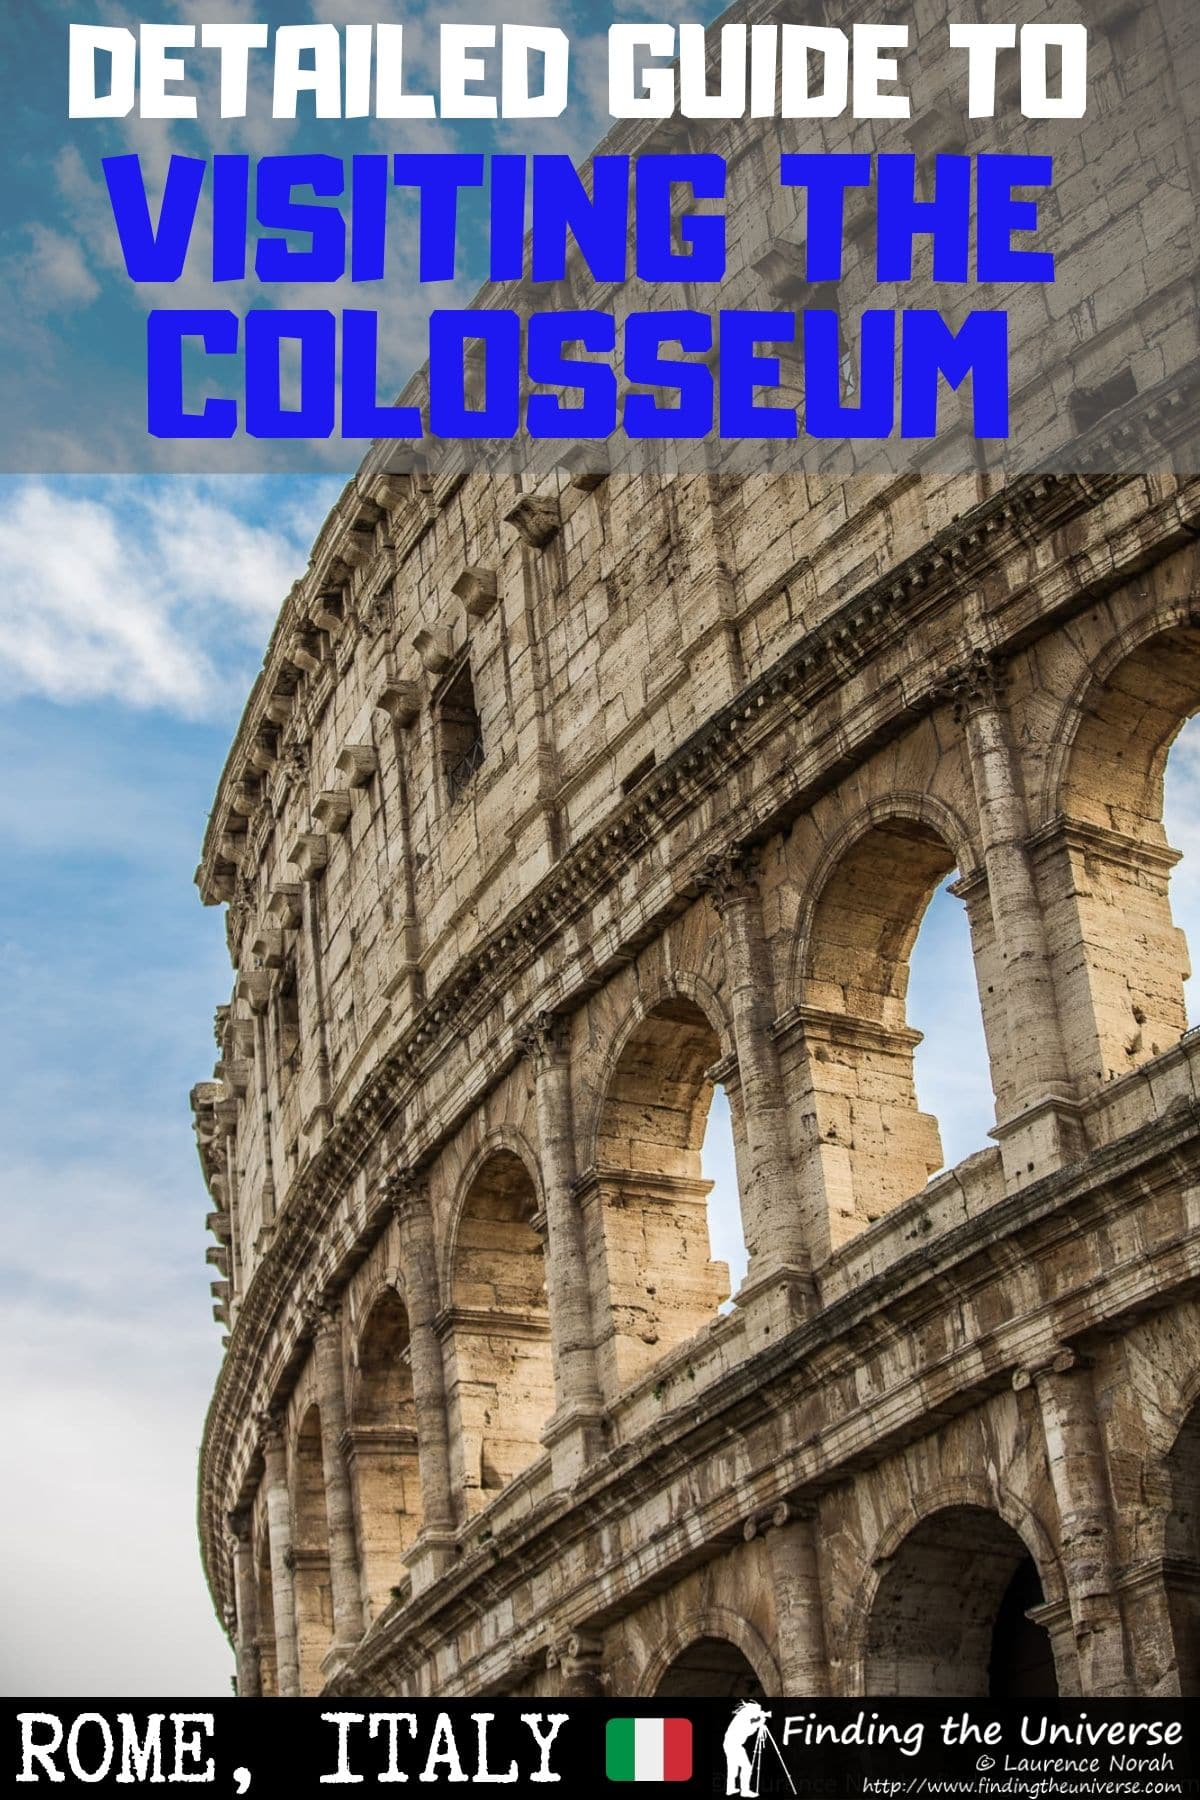 A comprehensive guide to visiting the Colosseum in Rome, including the best tours, how to buy tickets, where to stay near the Colosseum, and more!